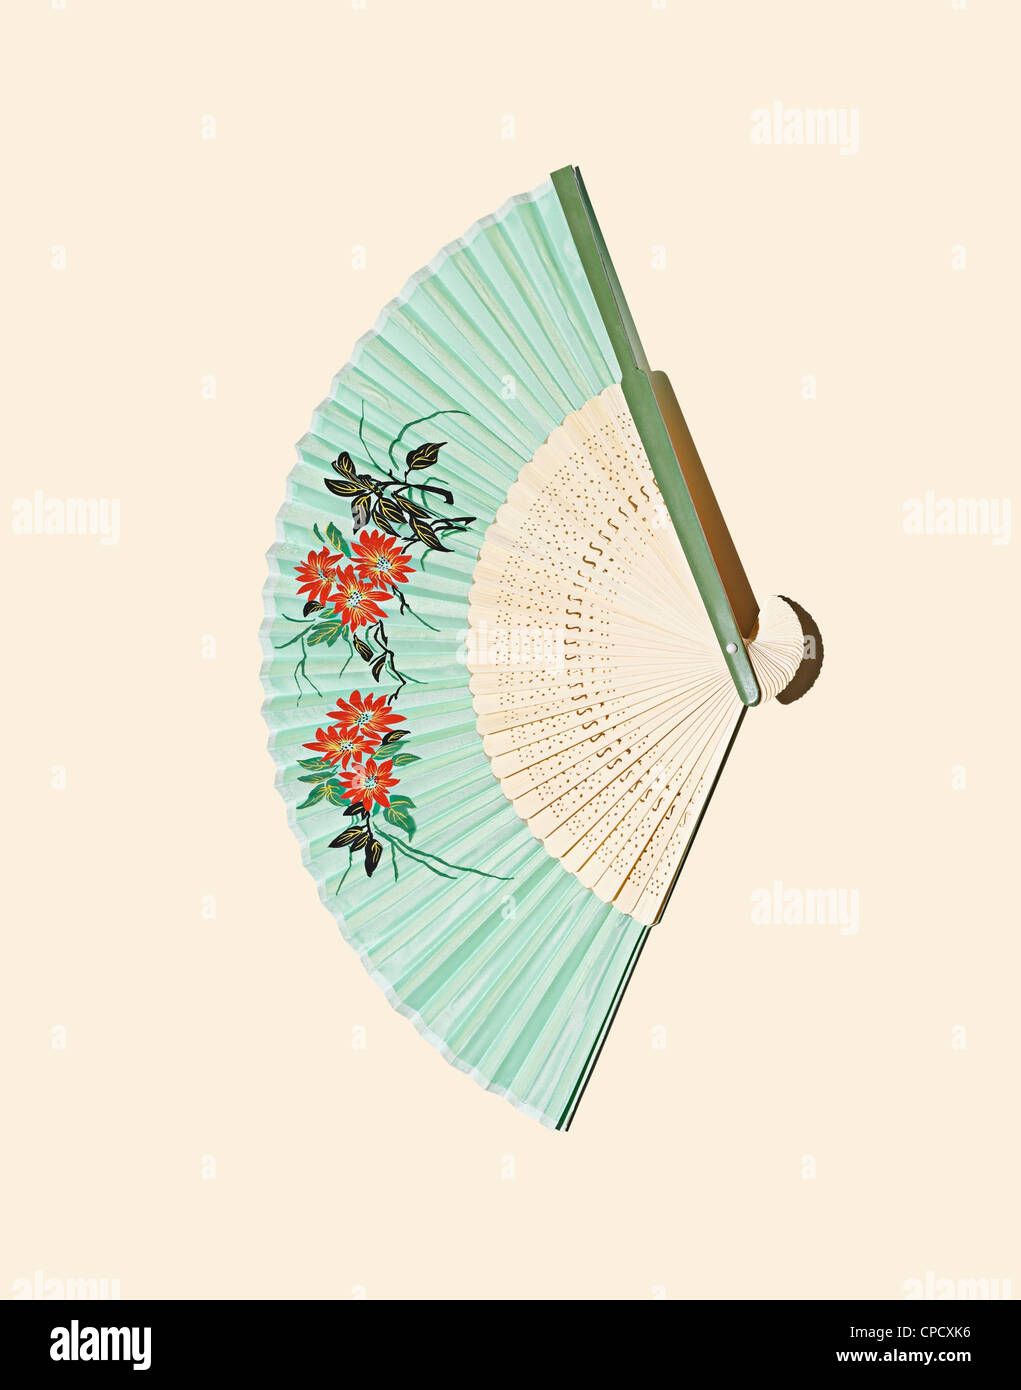 Close up of decorative fold out fan - Stock Image